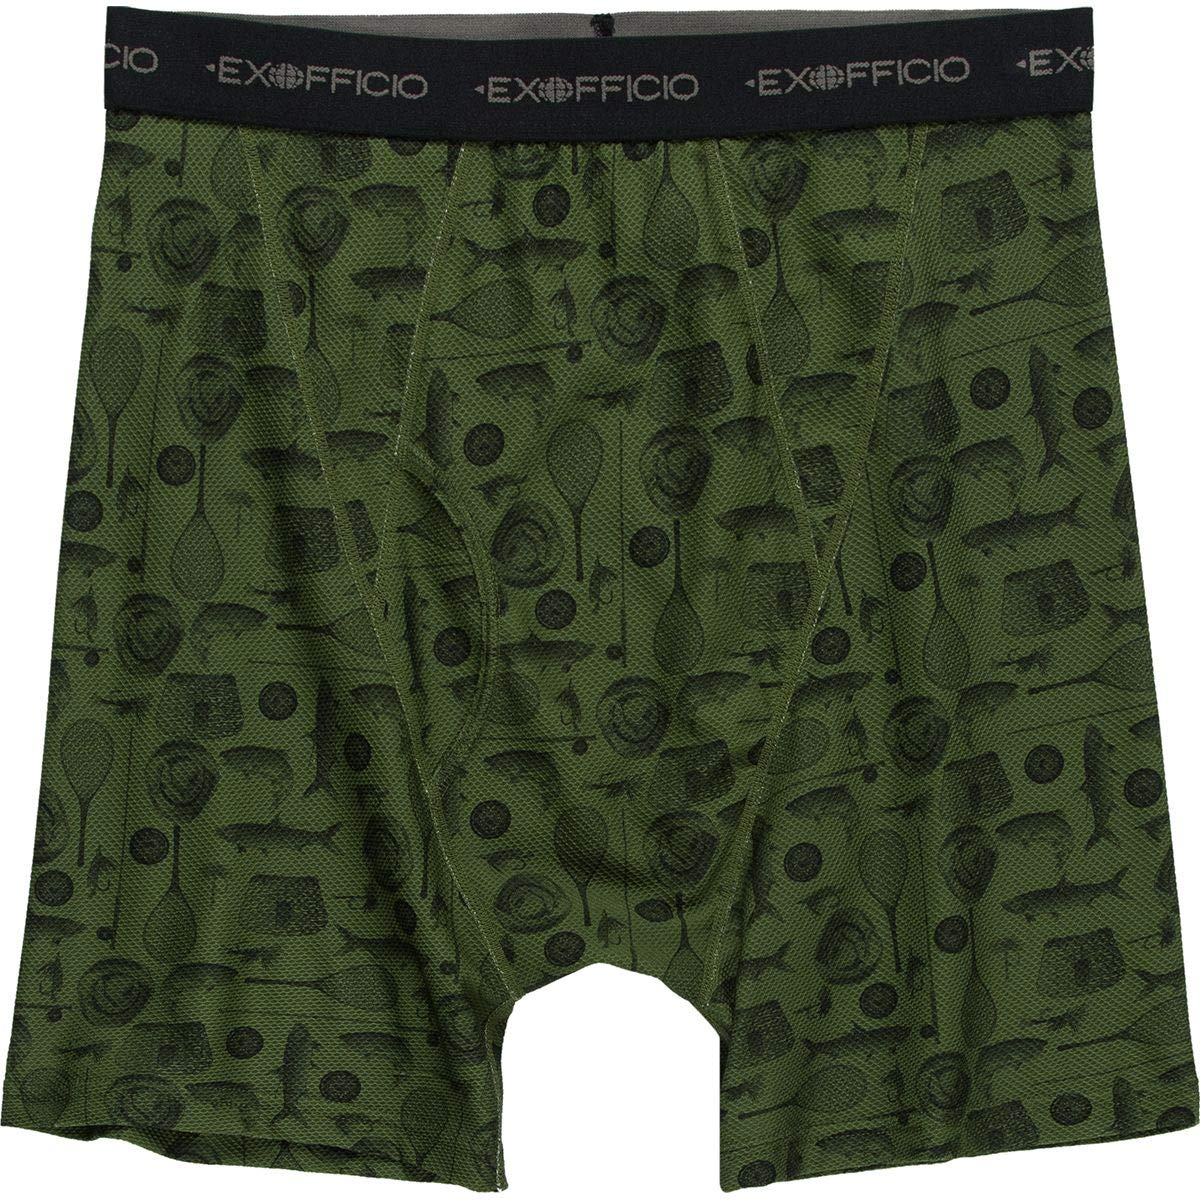 ExOfficio Give-N-Go Printed Boxer Brief - Men's Alpine Green Fly Fishing, M